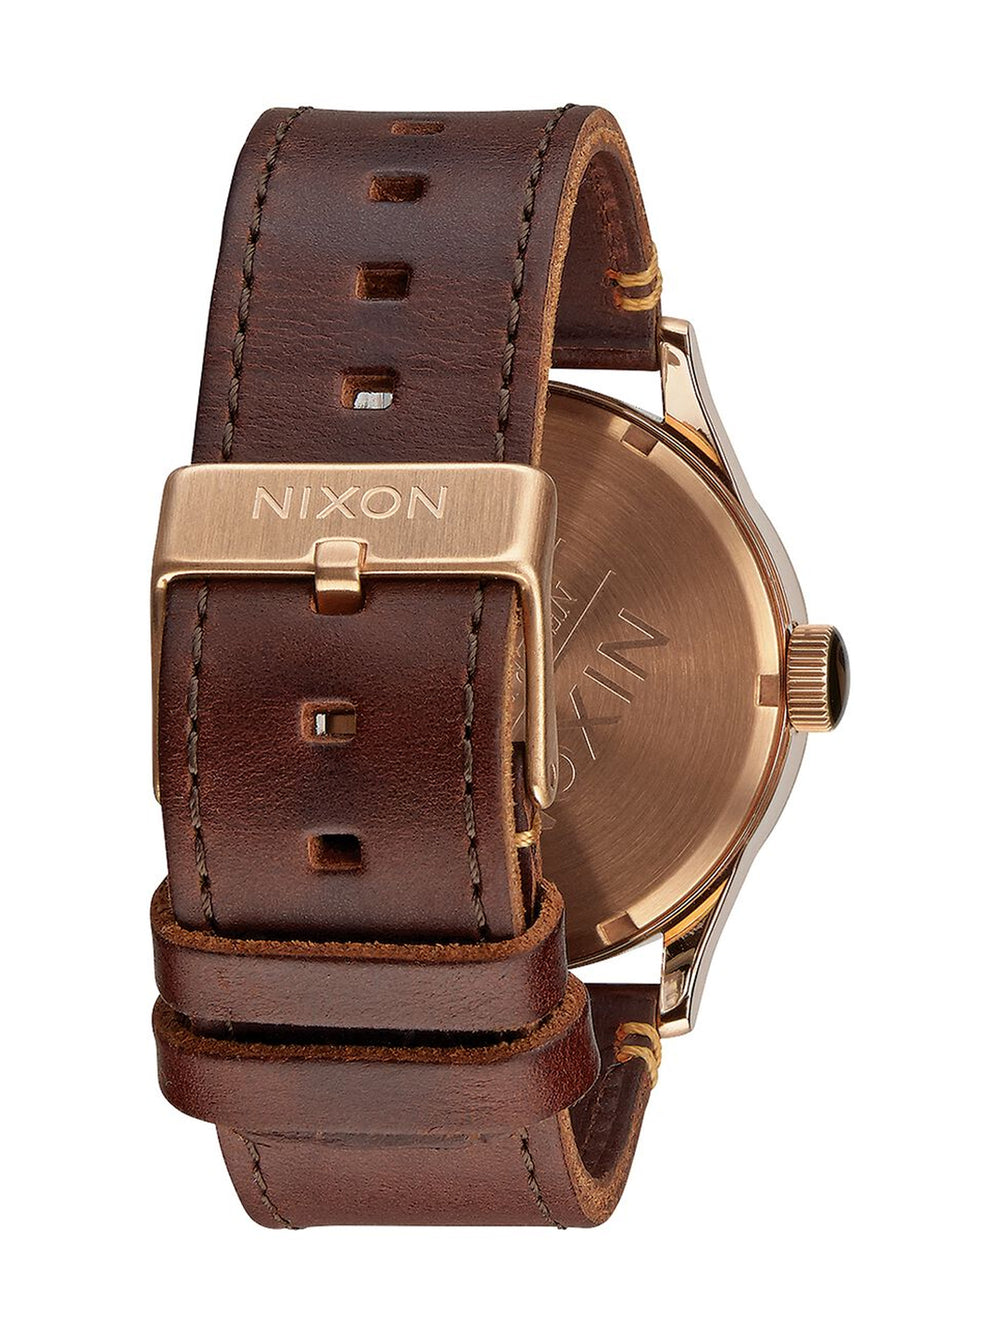 MENS SENTRY LEATHER - ROS/GUN/BRN WATCH